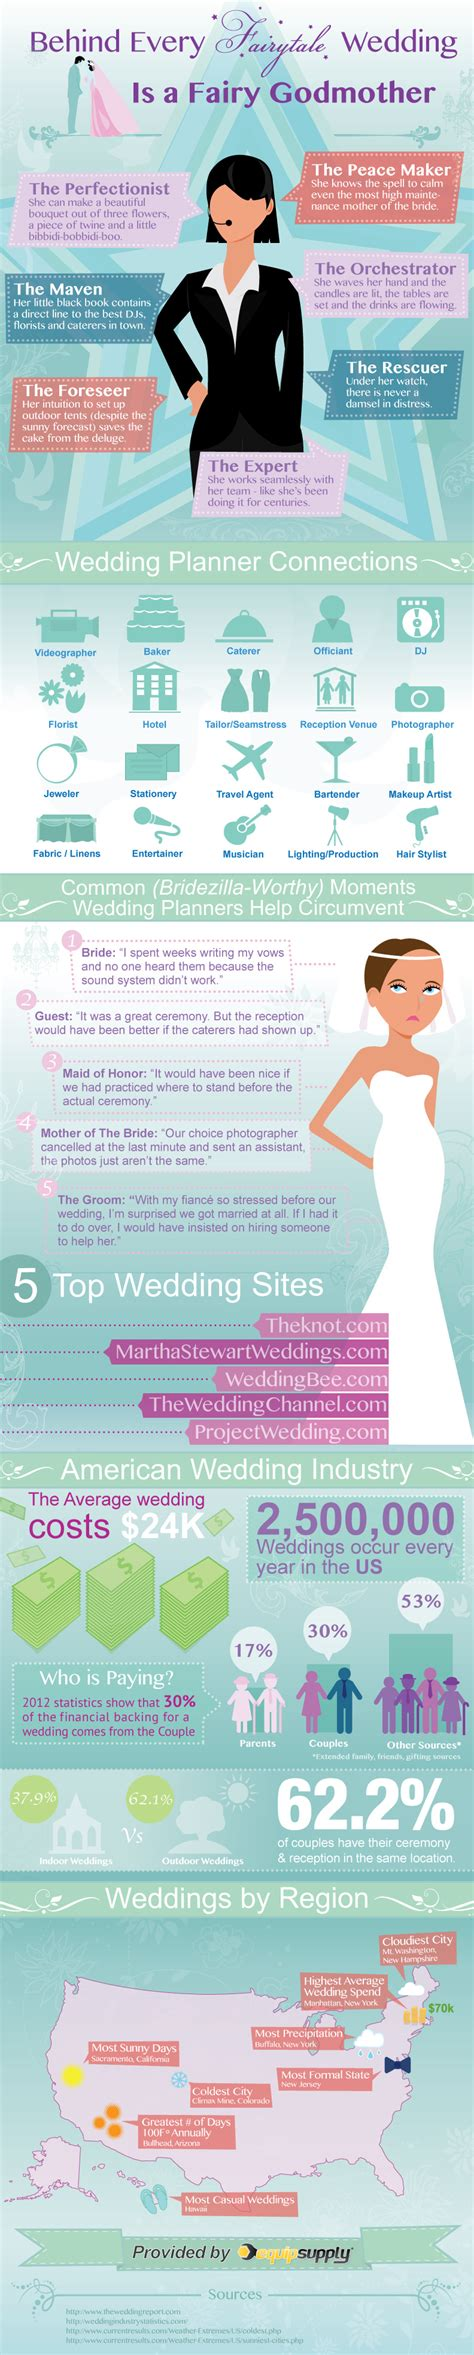 Why To Use A Wedding Planner Infographic. Ideas For My 12th Wedding Anniversary. Free Printable Harley Davidson Wedding Invitations. Wedding Invitation Message In Gujarati. Wedding Planners Do. Wedding Invitations Cheap Printing. Armenian Wedding Portal. Wedding Planning Book At Walmart. Creative South Indian Wedding Photography